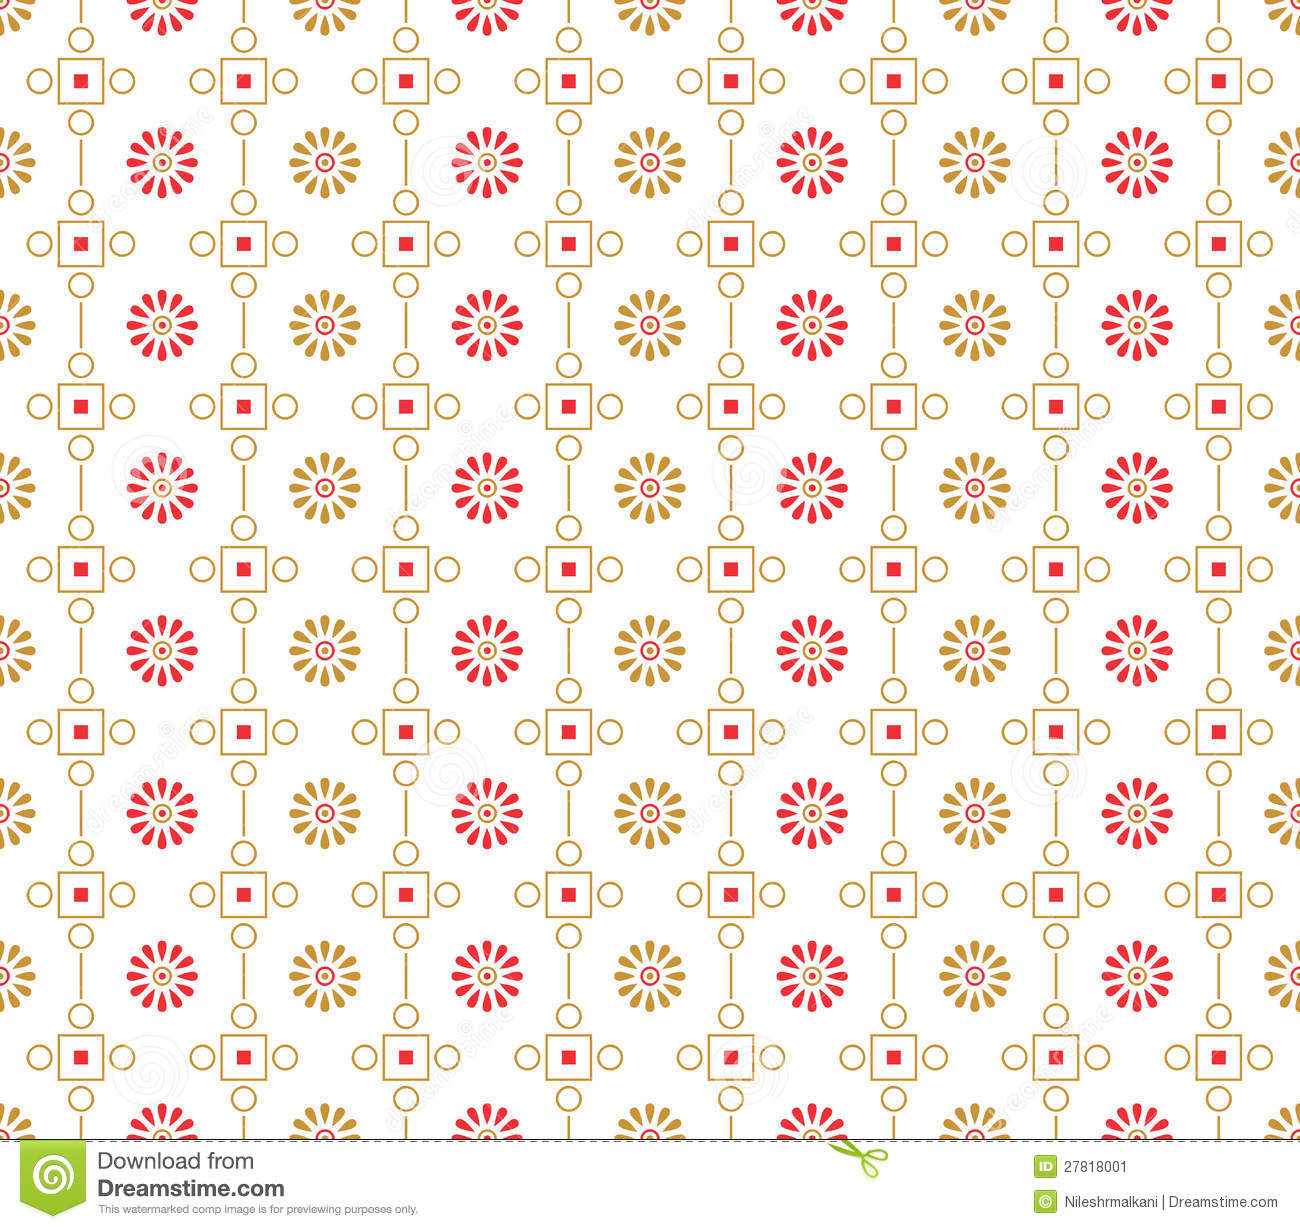 Seamless designer vector wallpaper and pattern.